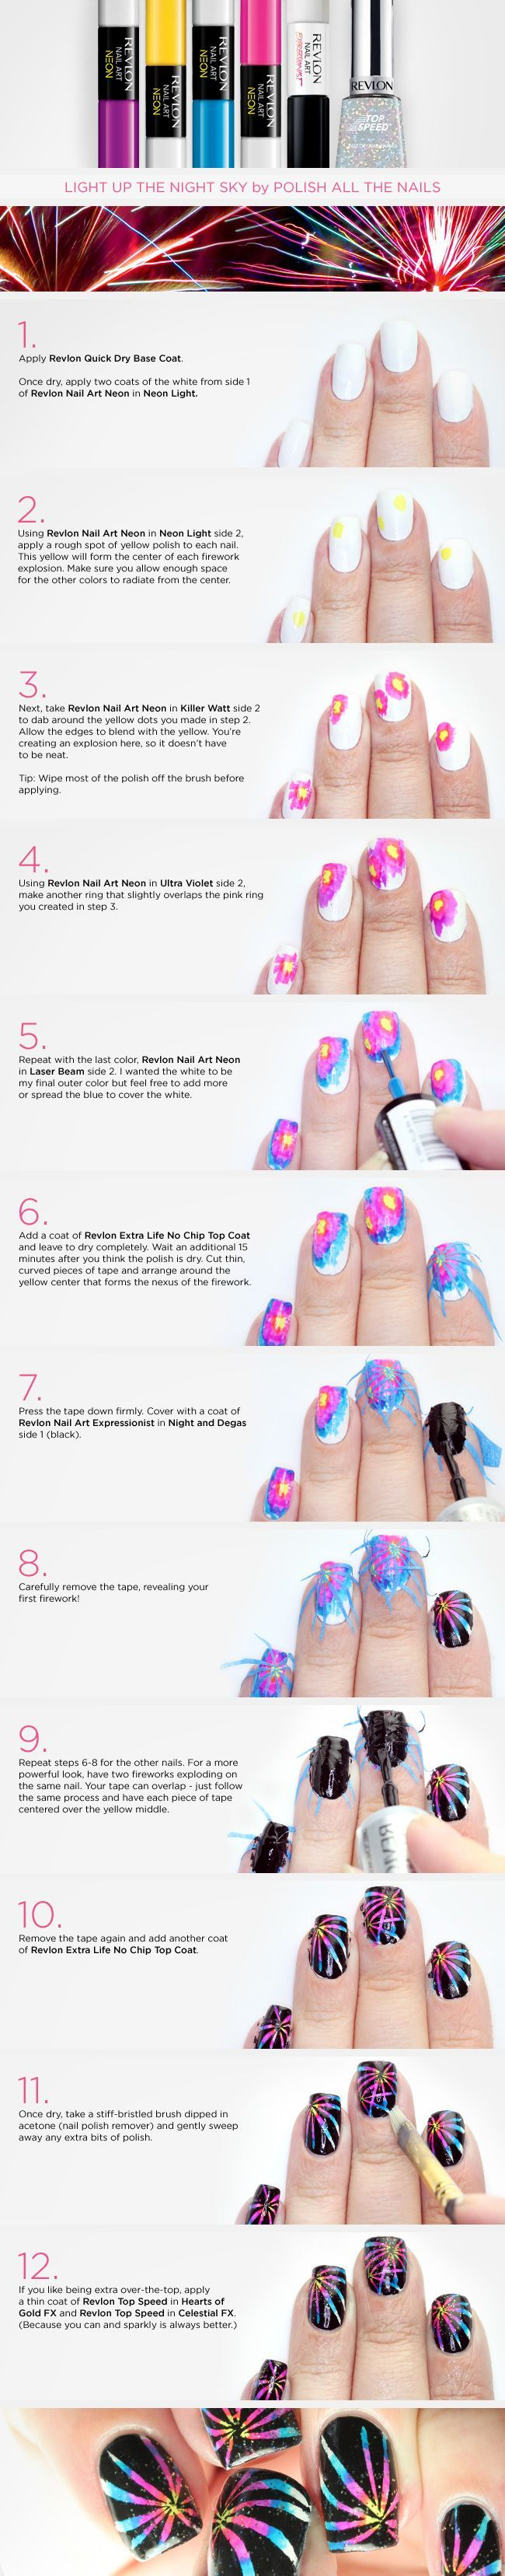 Firework nails! Step by step